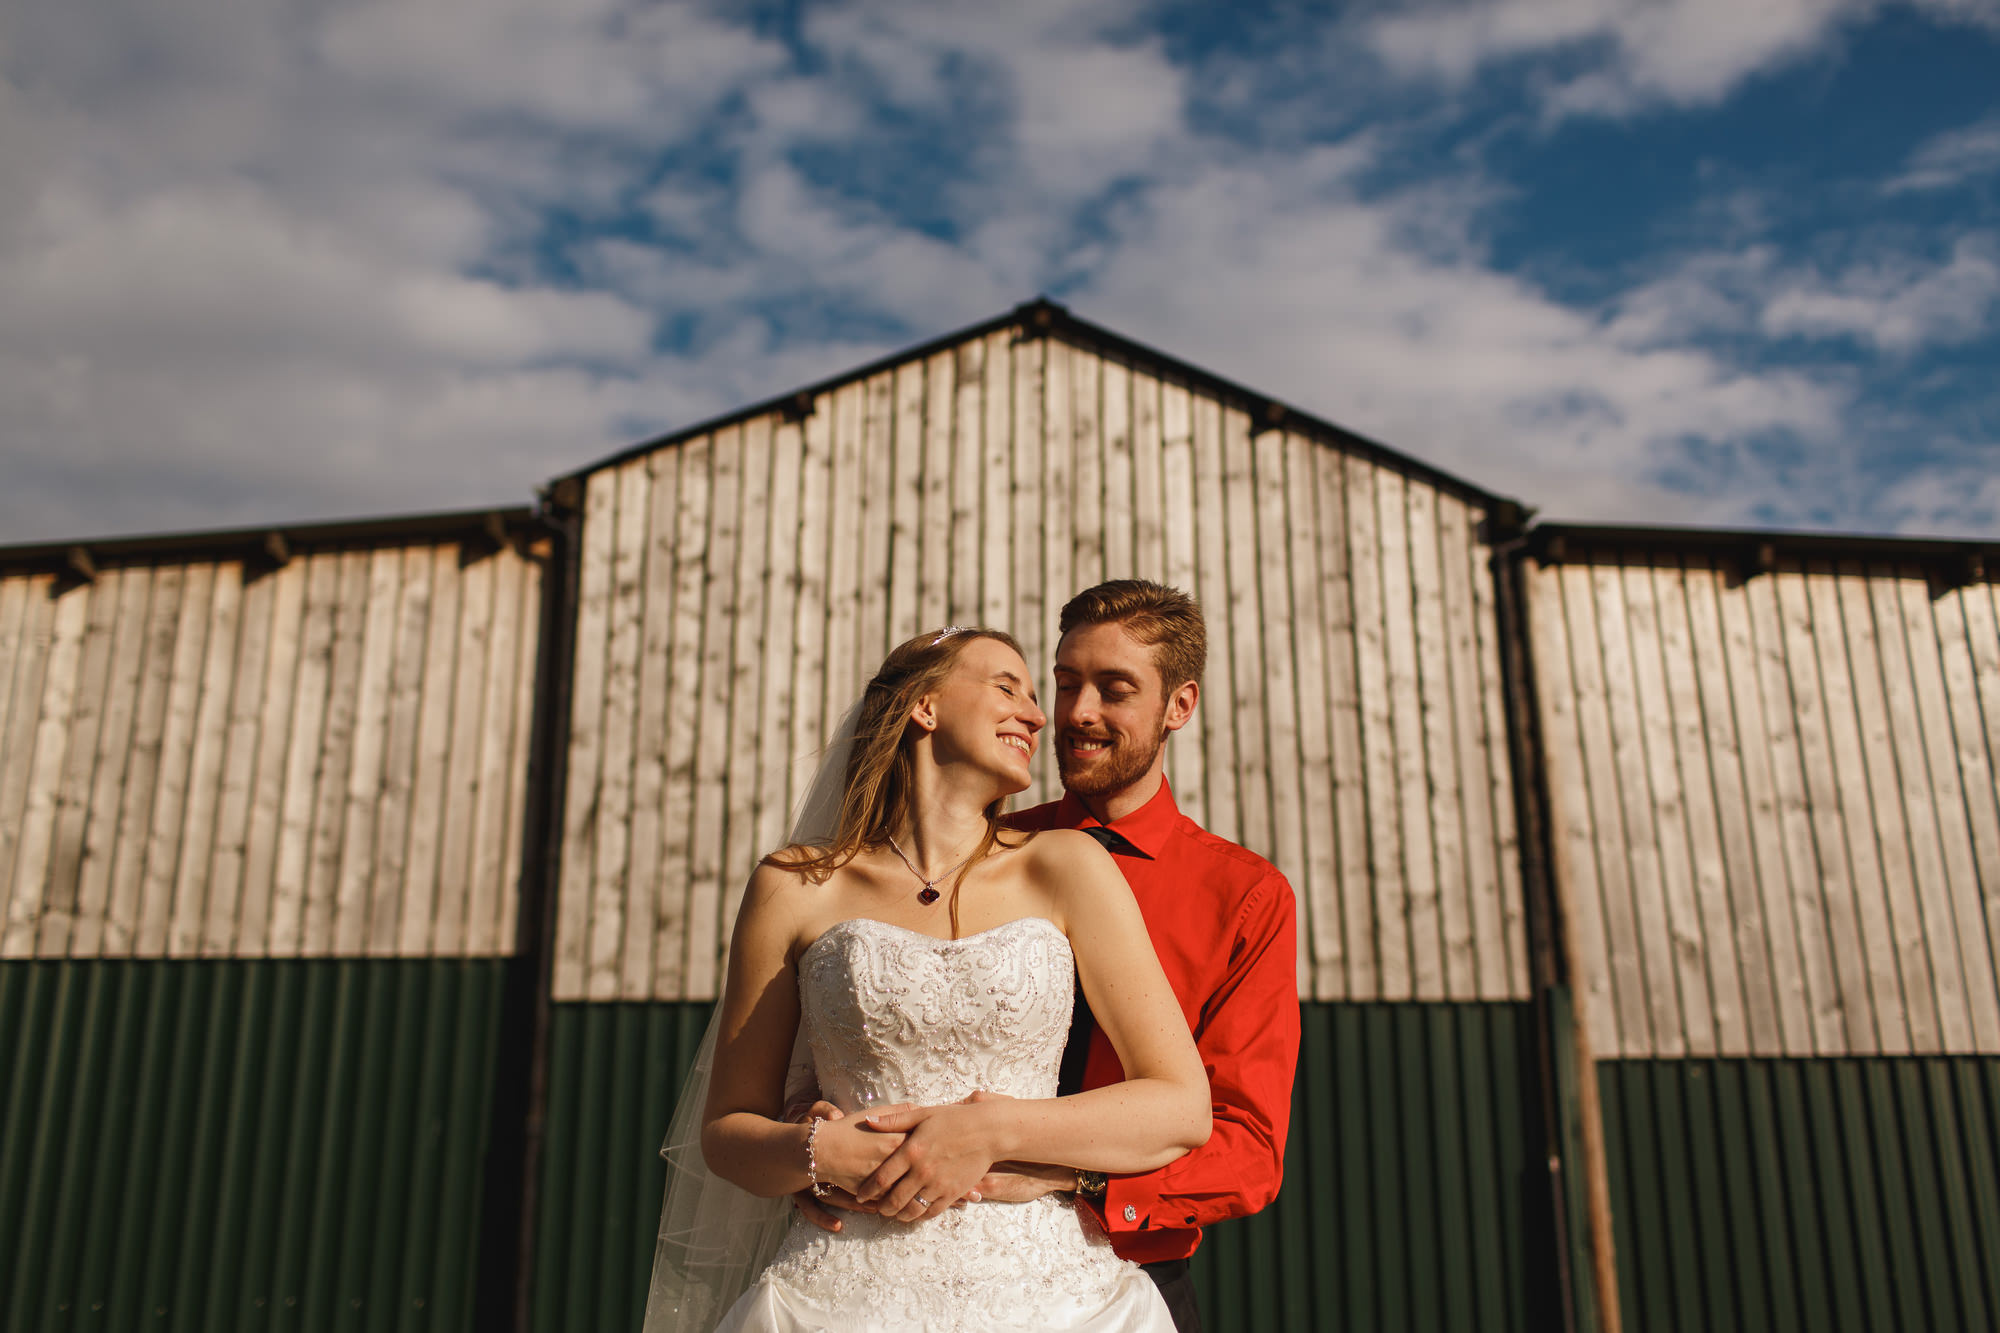 barn-wedding-photography-cheshire-45